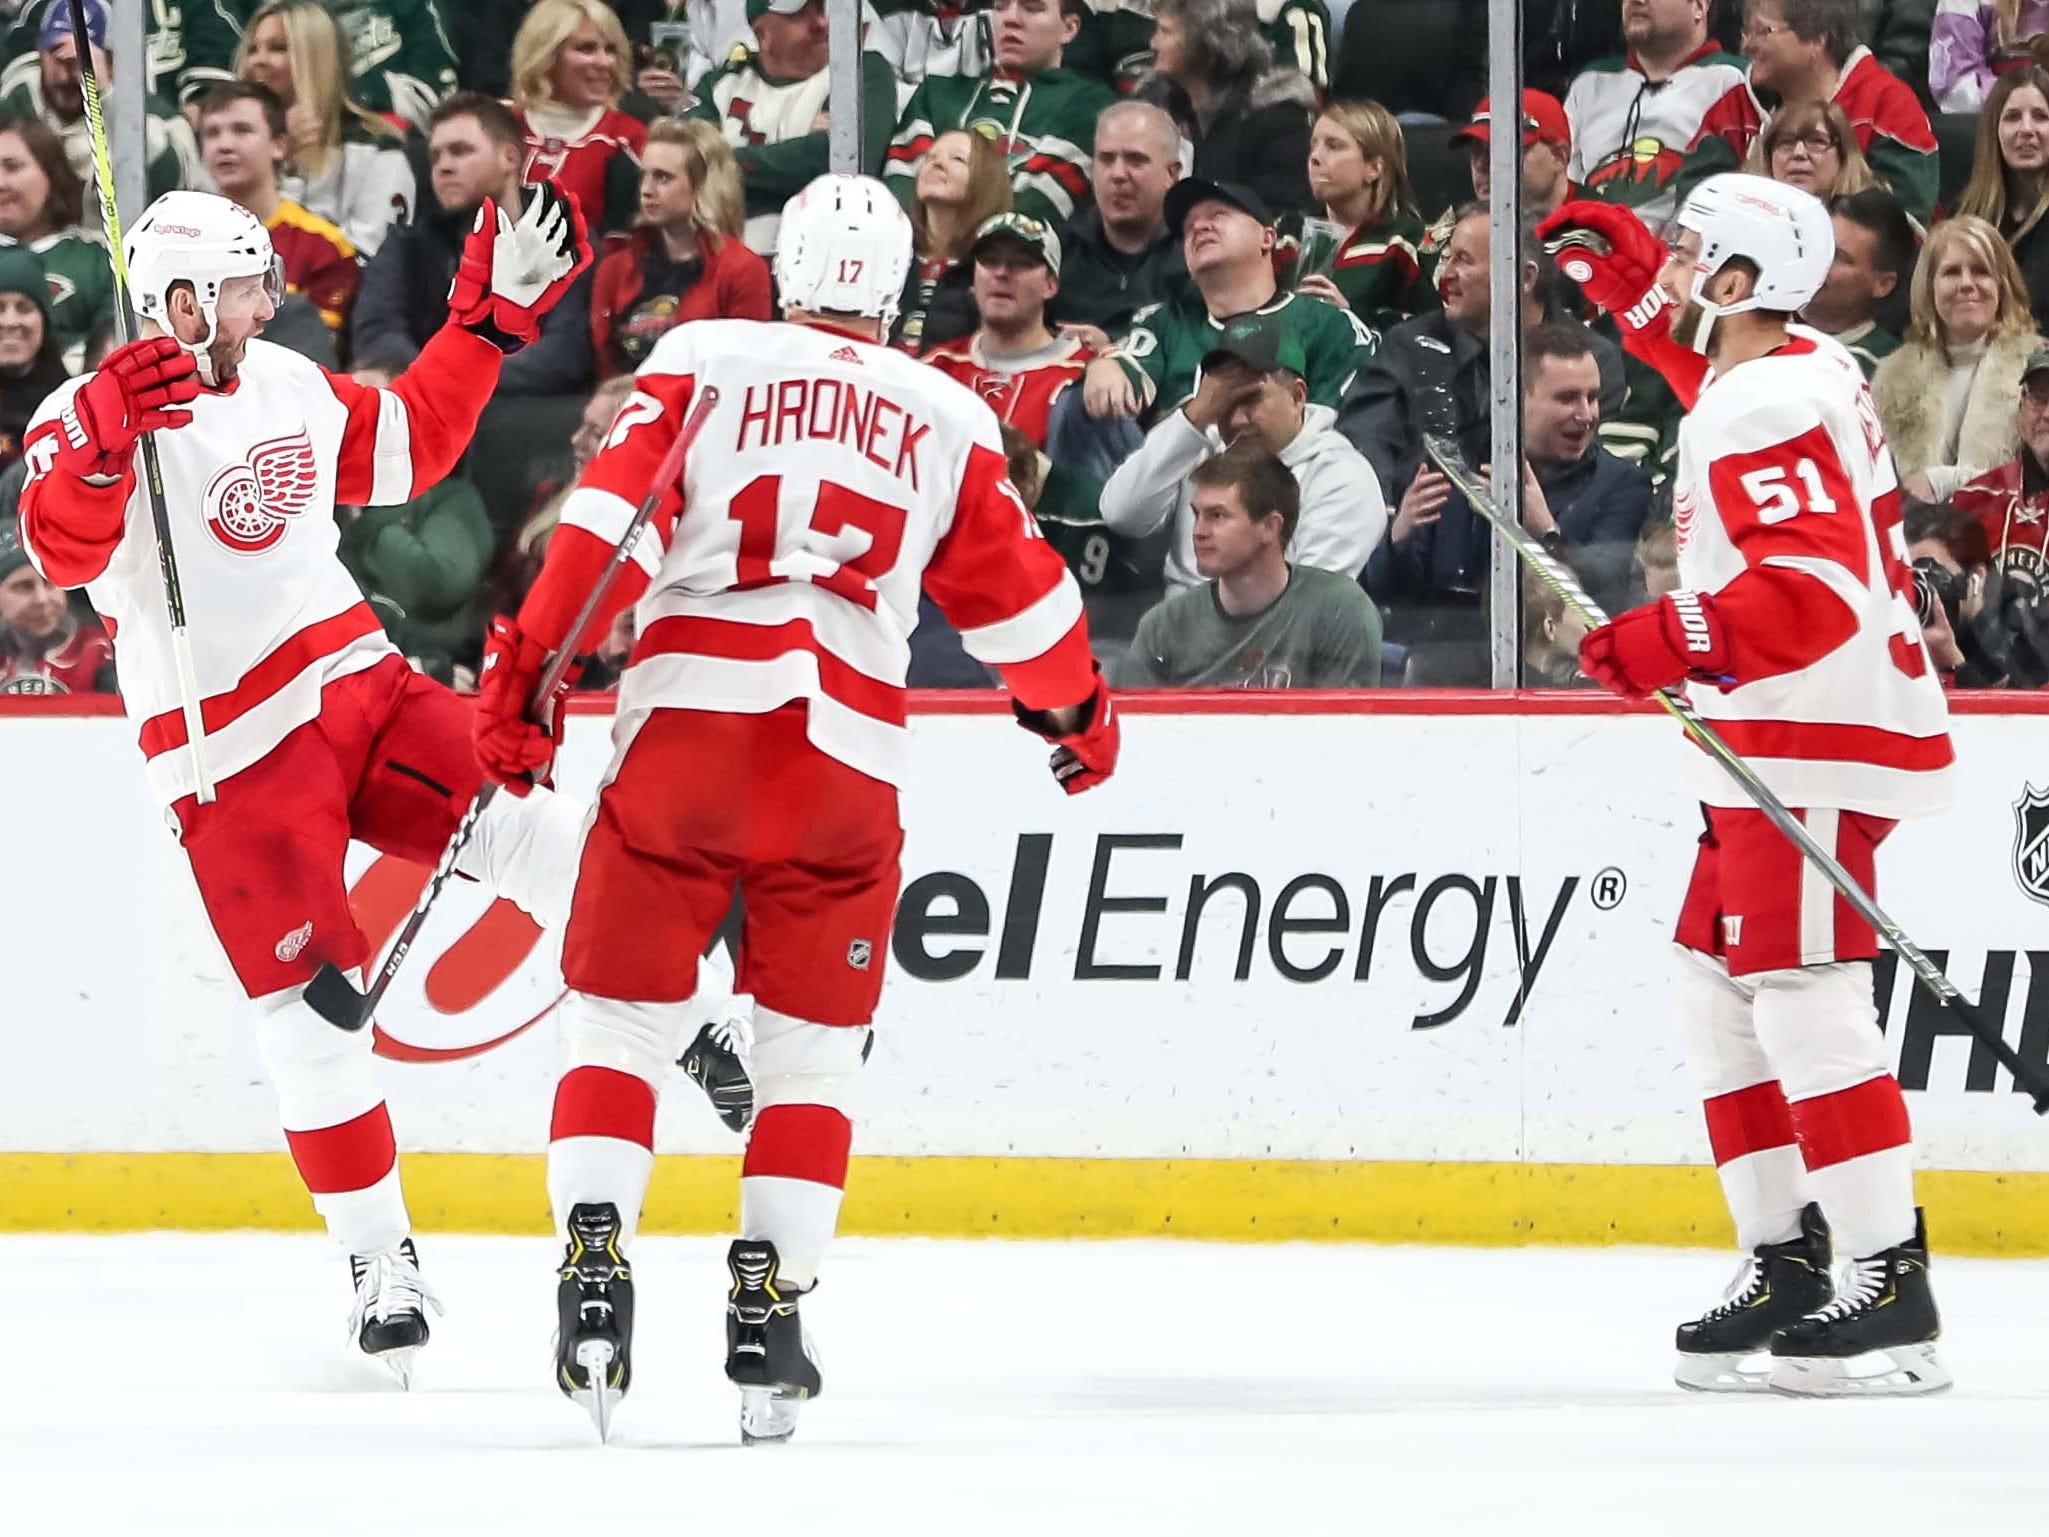 Red Wings forward Thomas Vanek, left, celebrates his goal with teammates during the second period of the Wings' 5-2 win on Saturday, Jan. 12, 2019, in St. Paul, Minn.